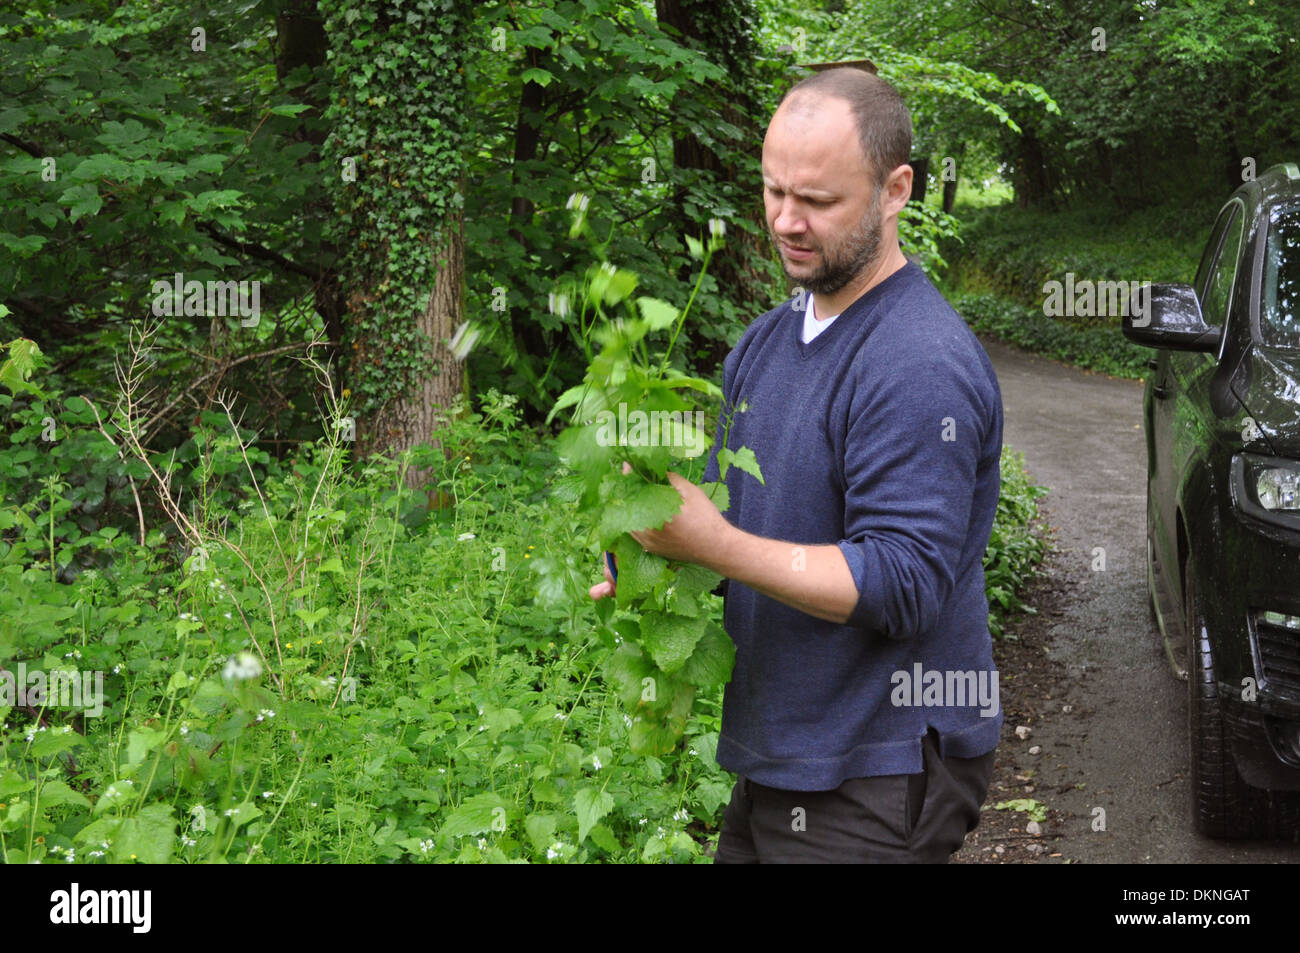 Simon Rogan, chef and owner of Michelin starred restaurant L'enclume foraging in Cumbria - Stock Image